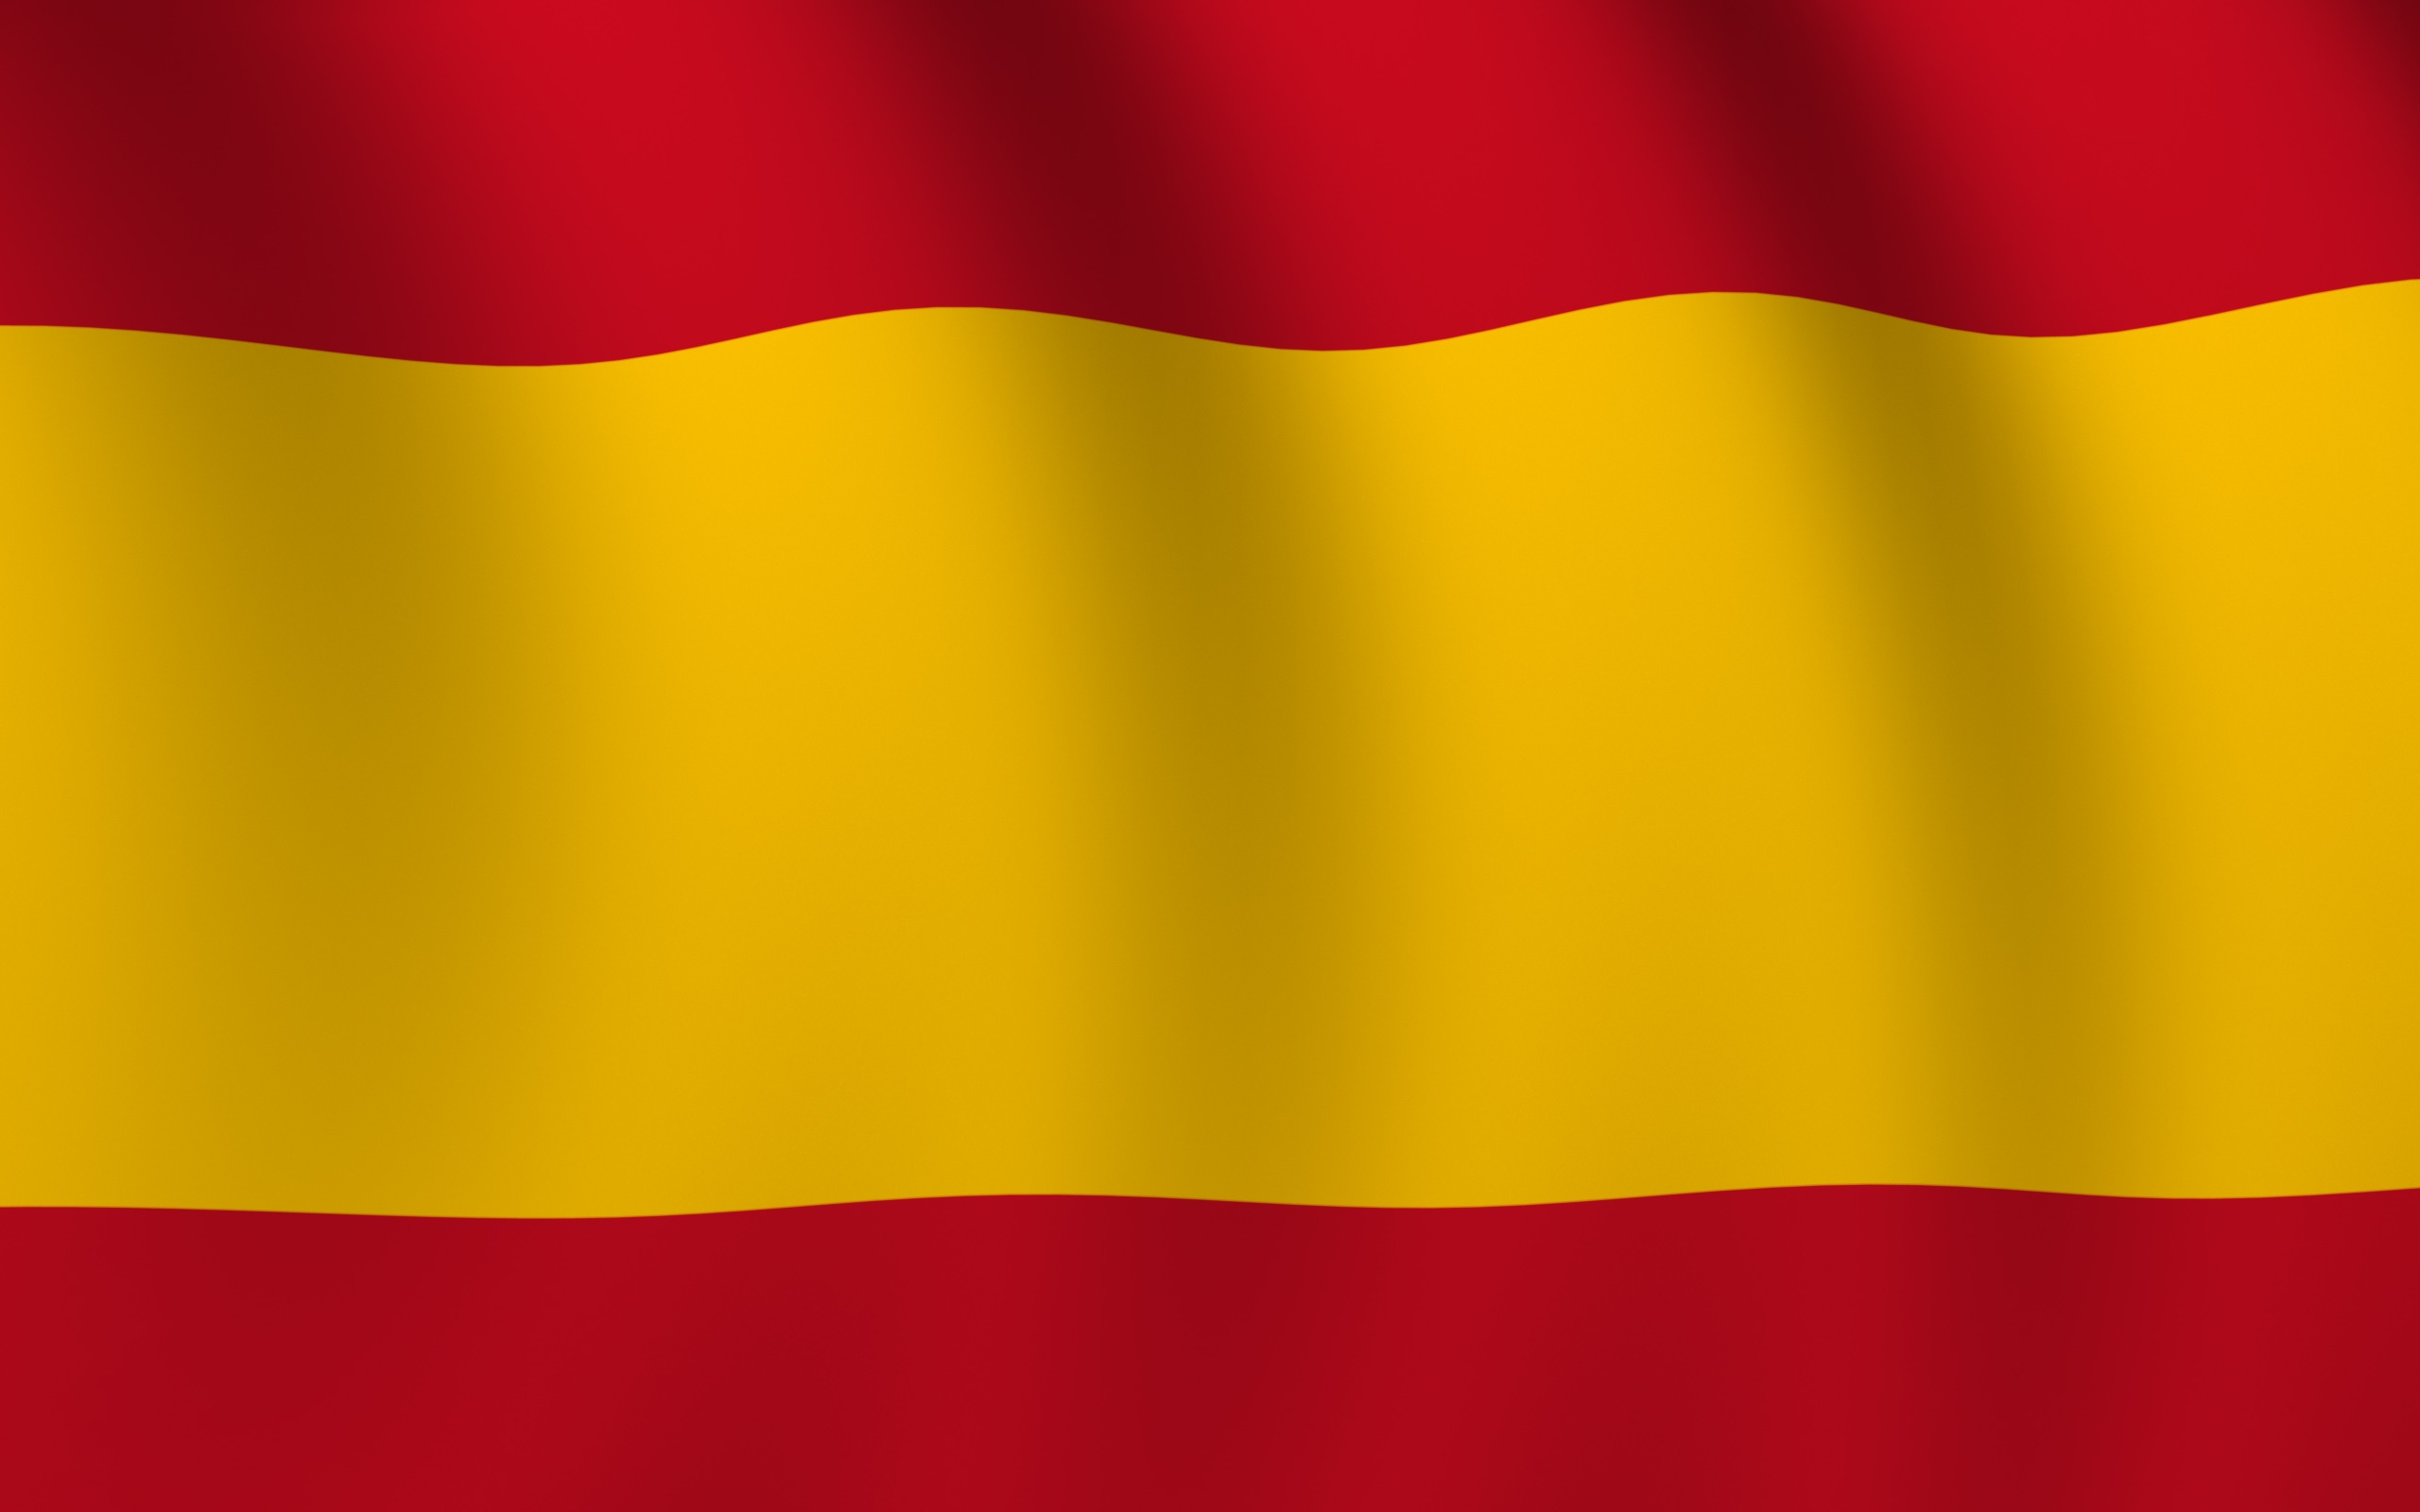 flag of spain hd wallpaper background image 2560x1600 id